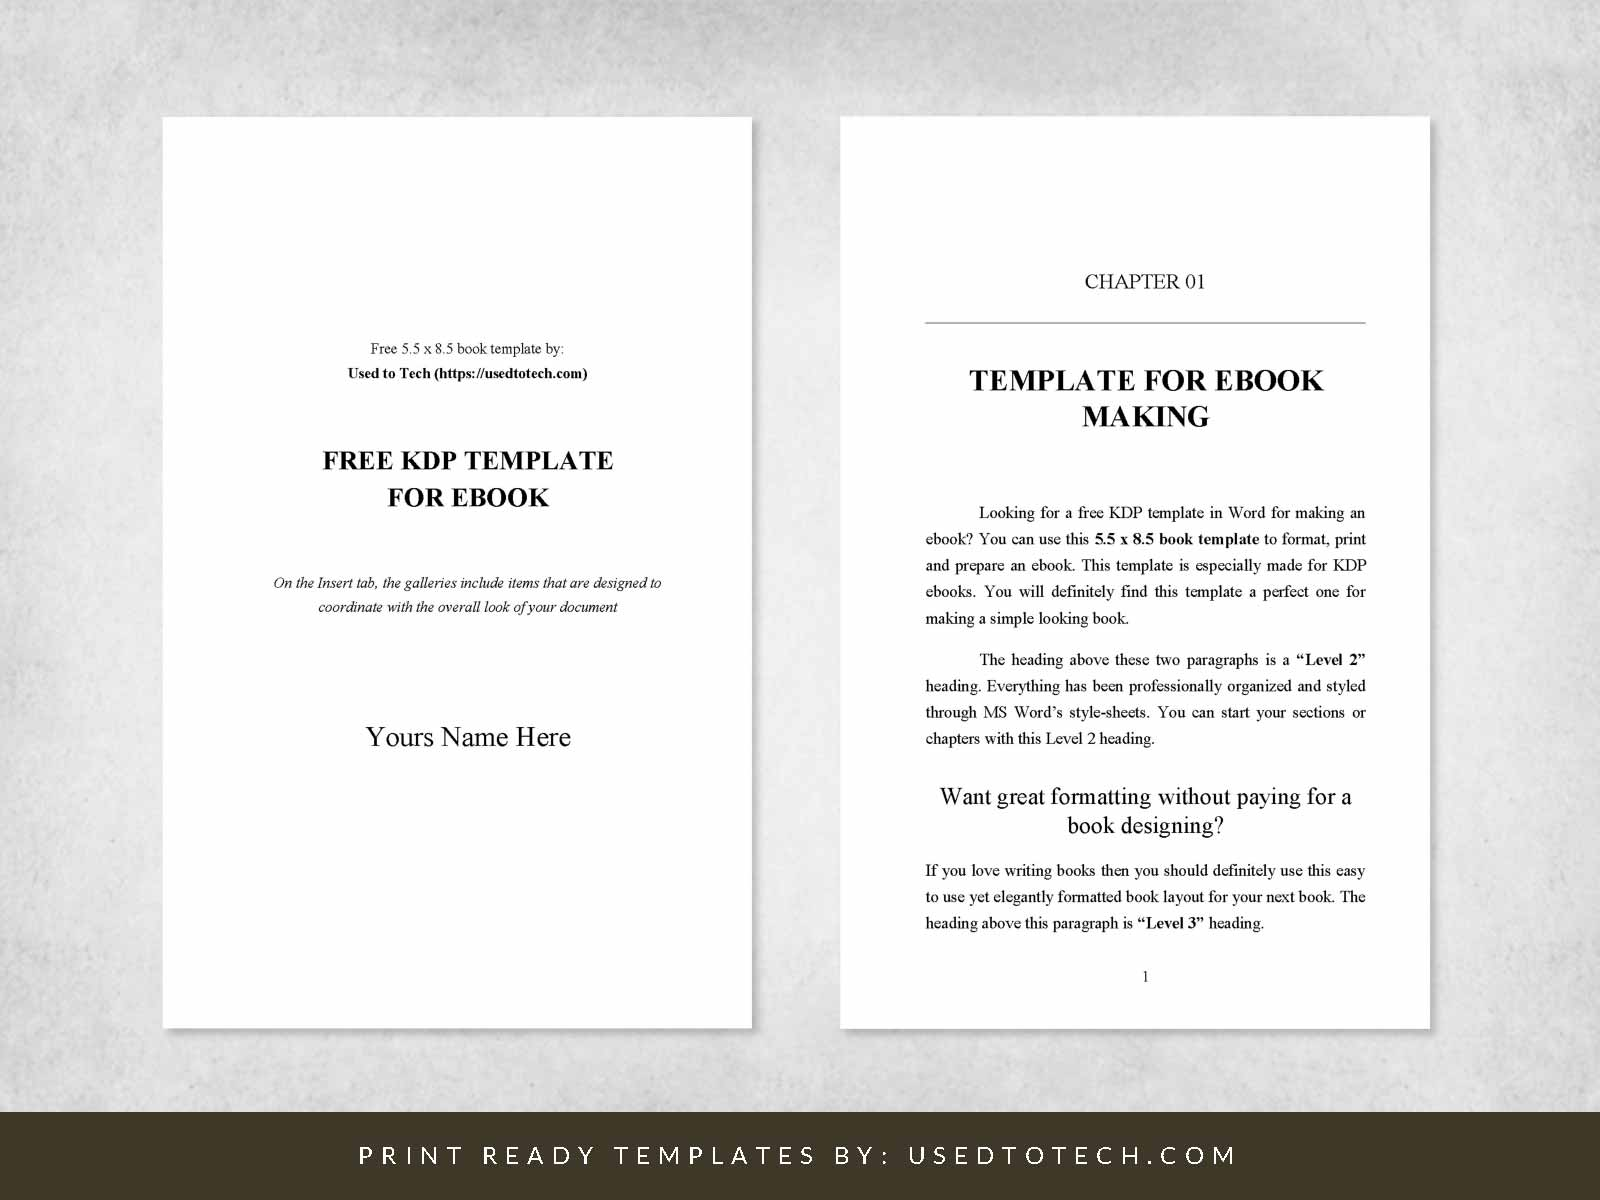 5.5 x 8.5 Kdp template in Word for ebook